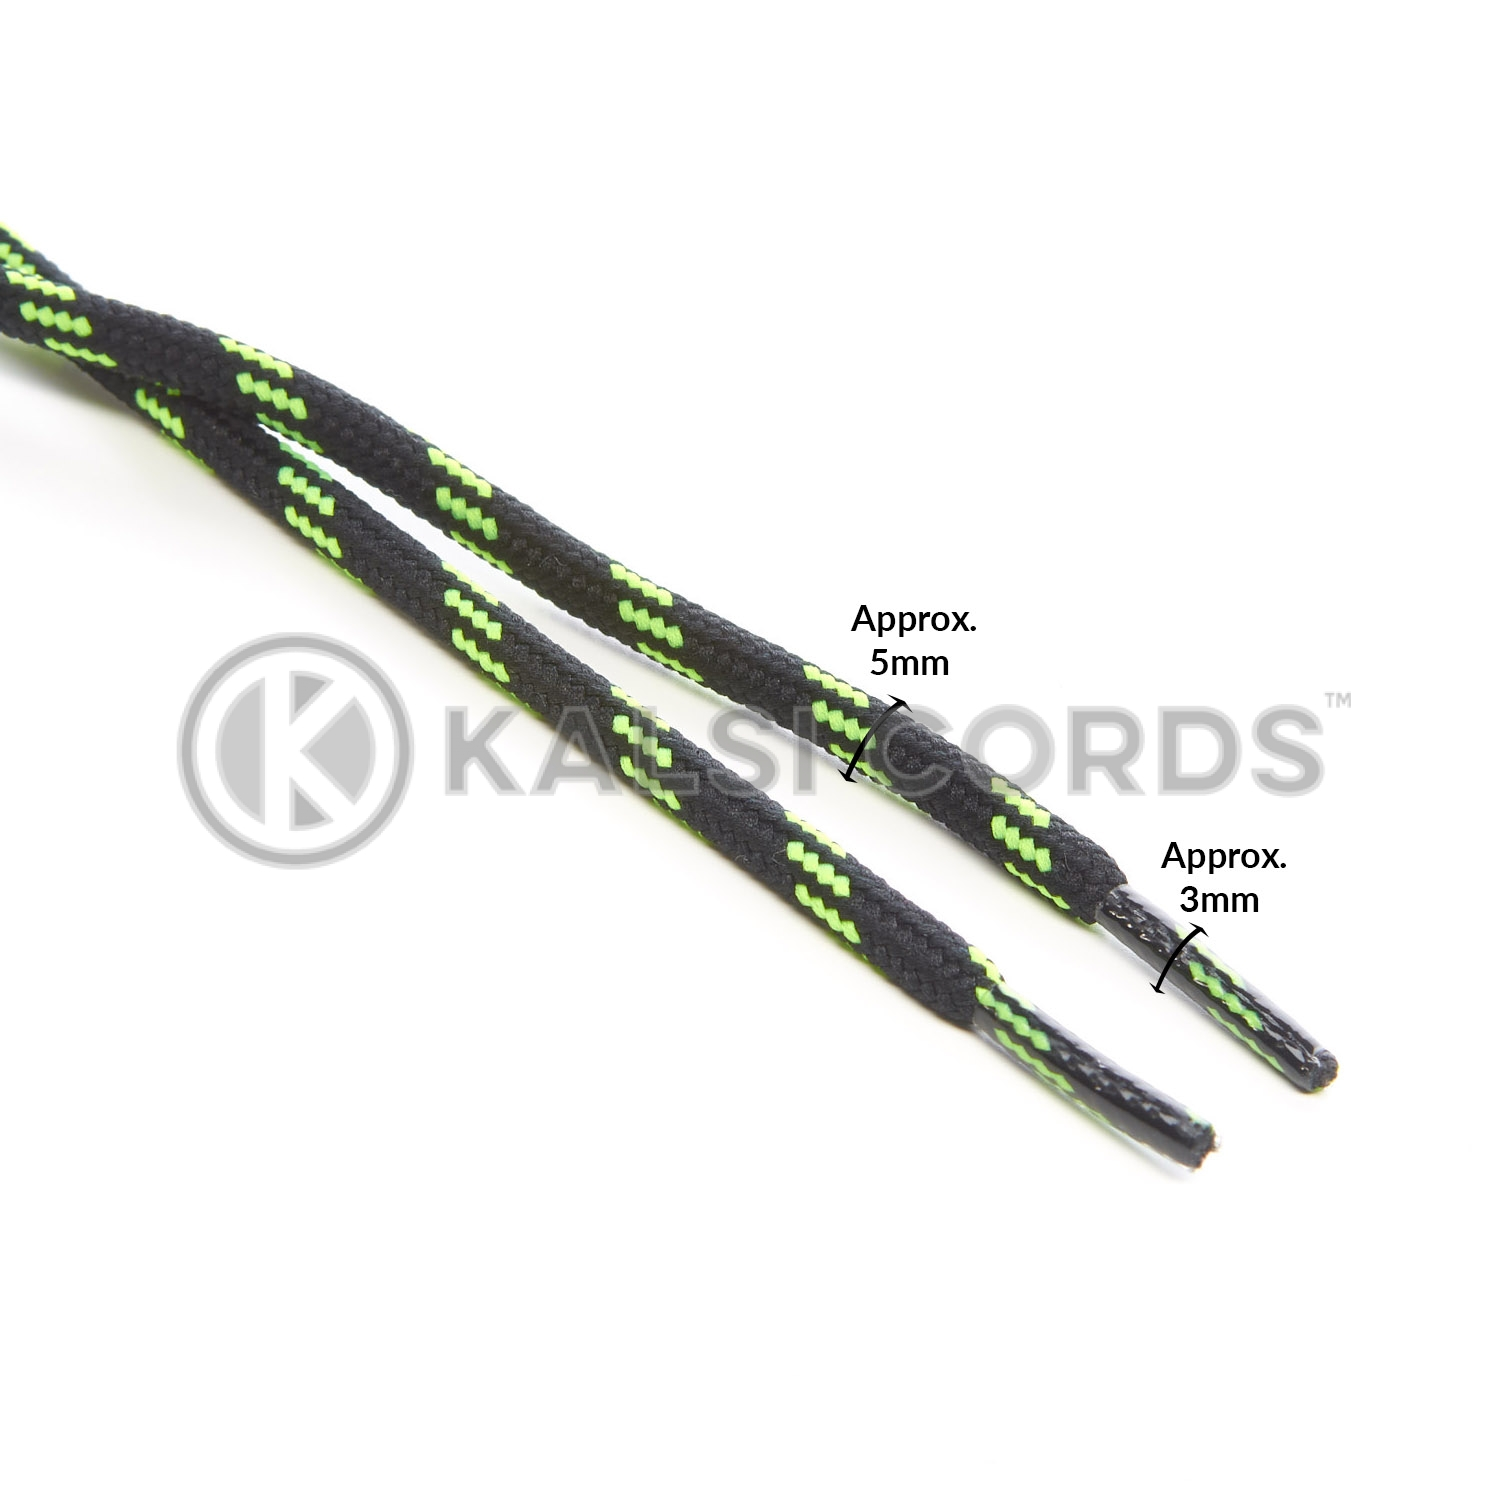 T621 5mm Round Cord Shoe Laces Black Fluorescent Lime Green 4 Fleck Kids Trainers Adults Hiking Walking Boots Kalsi Cords